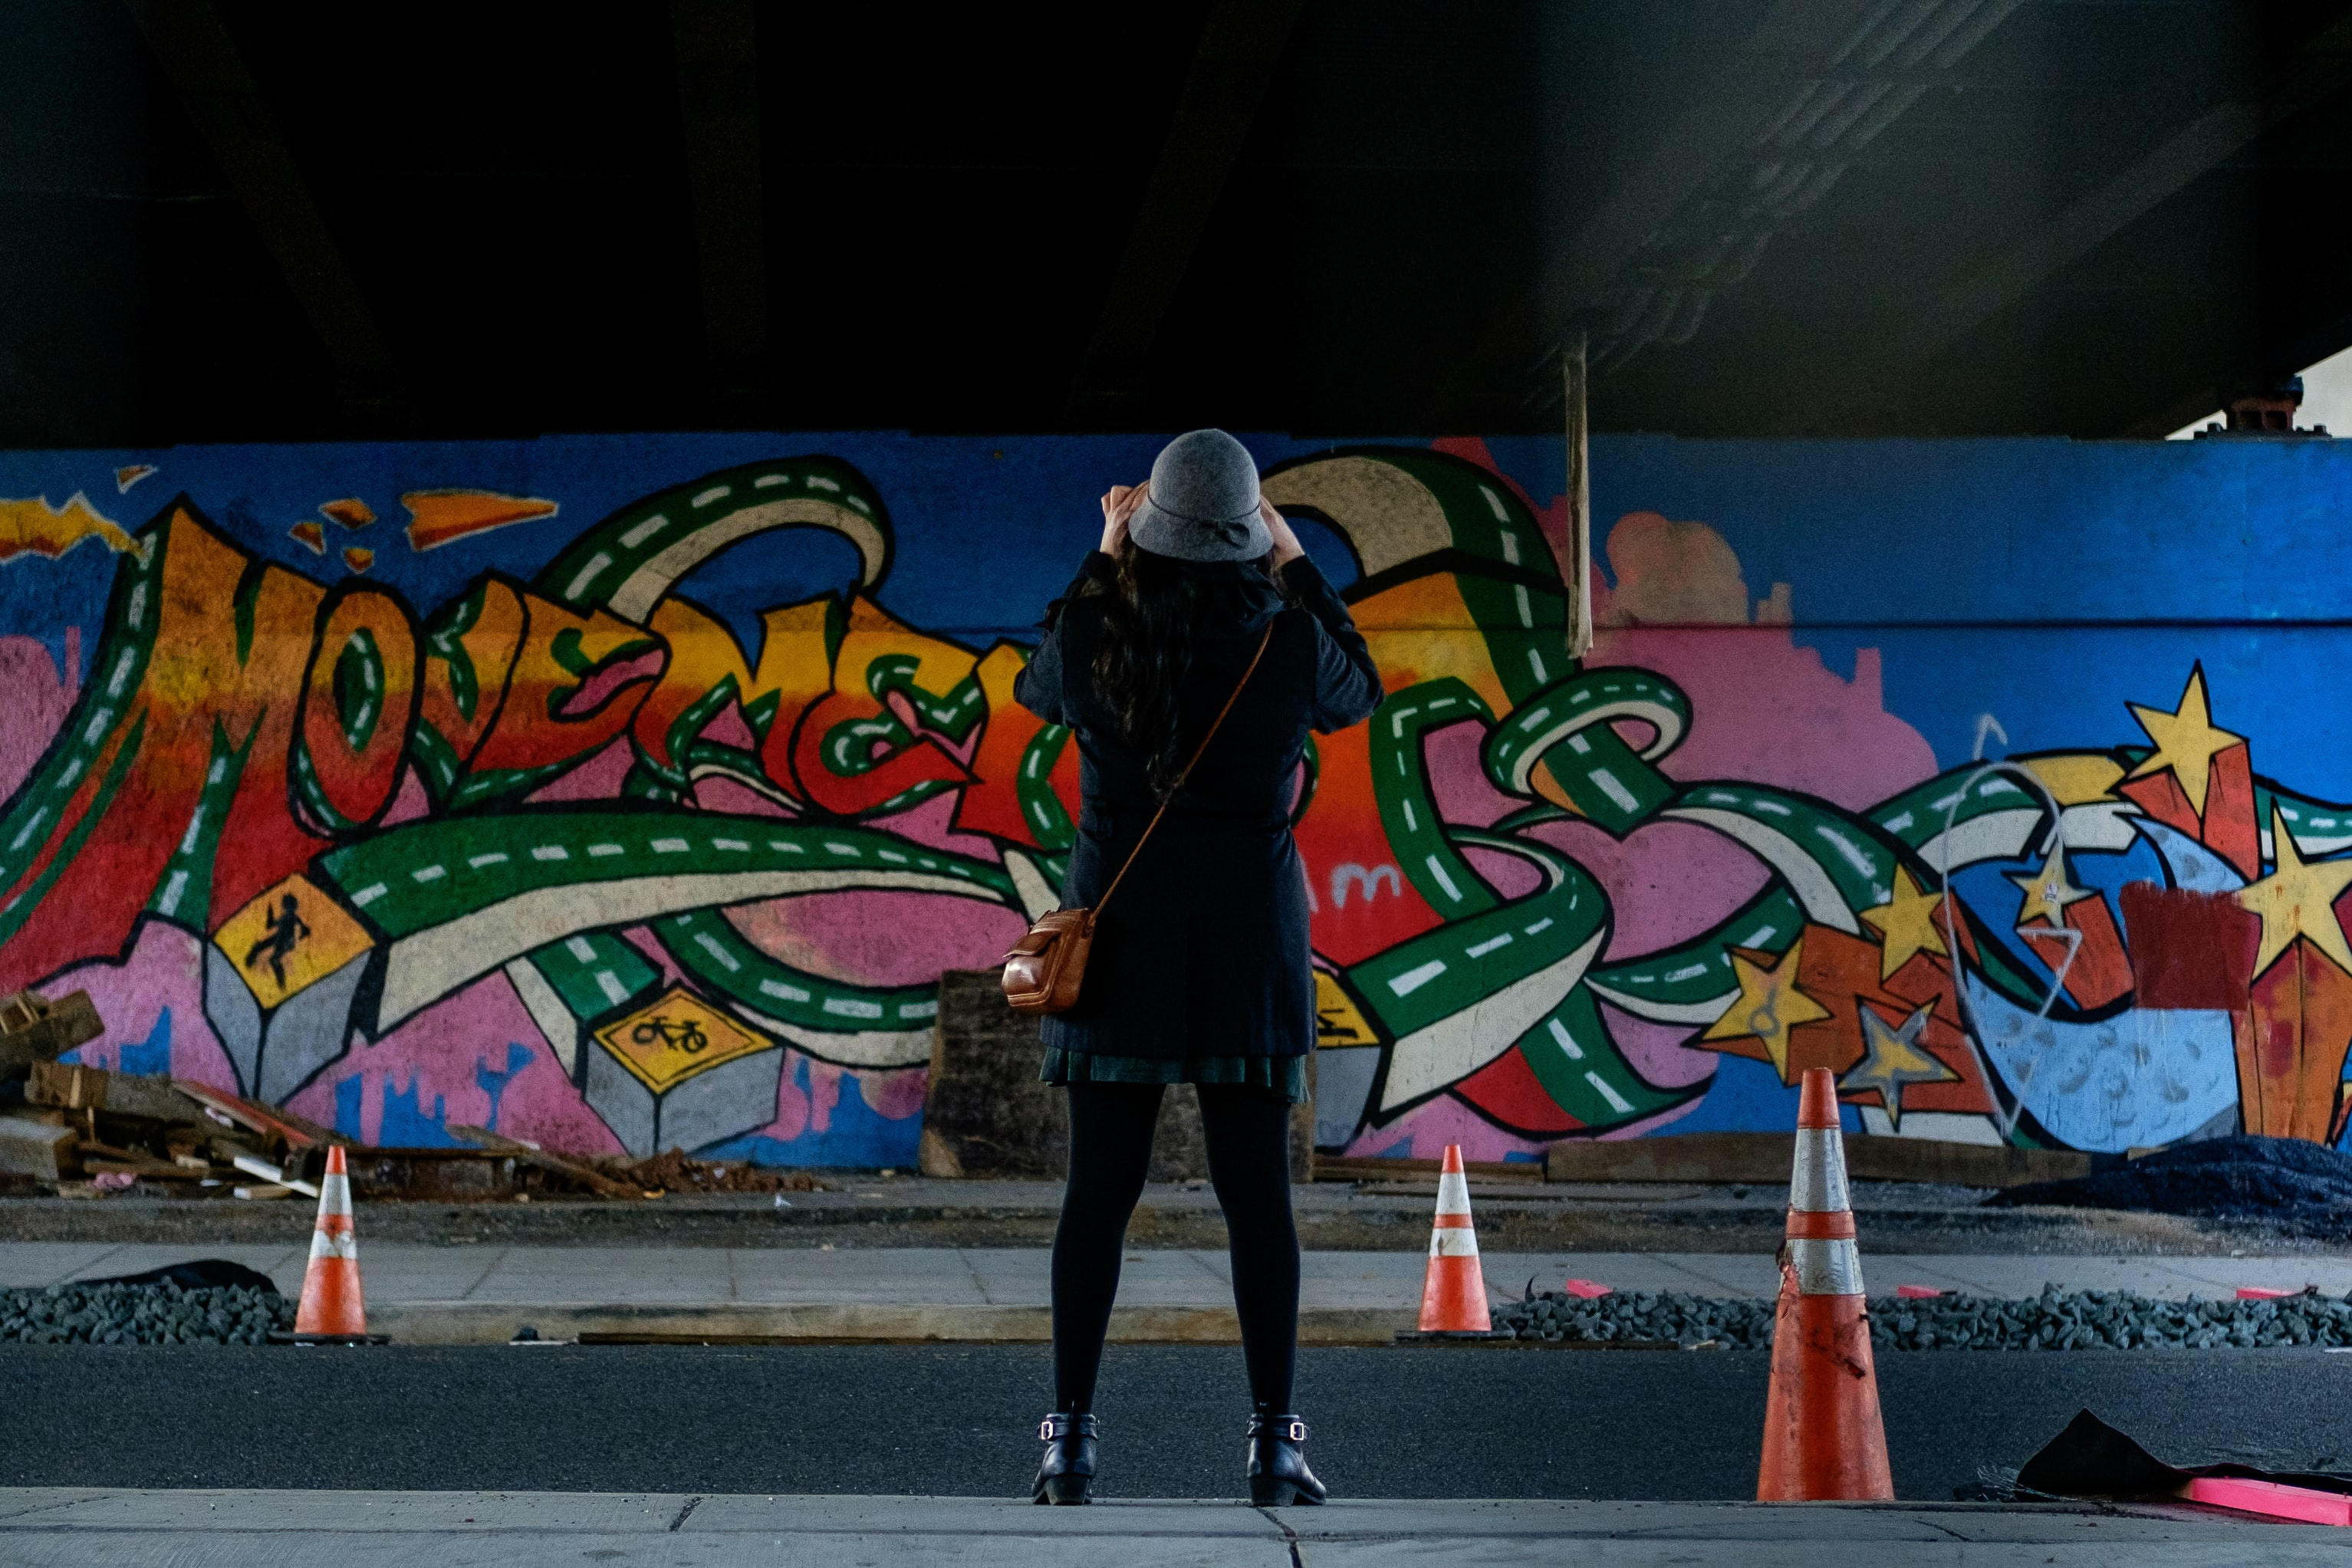 woman in blue coat standing in front of wall graffiti